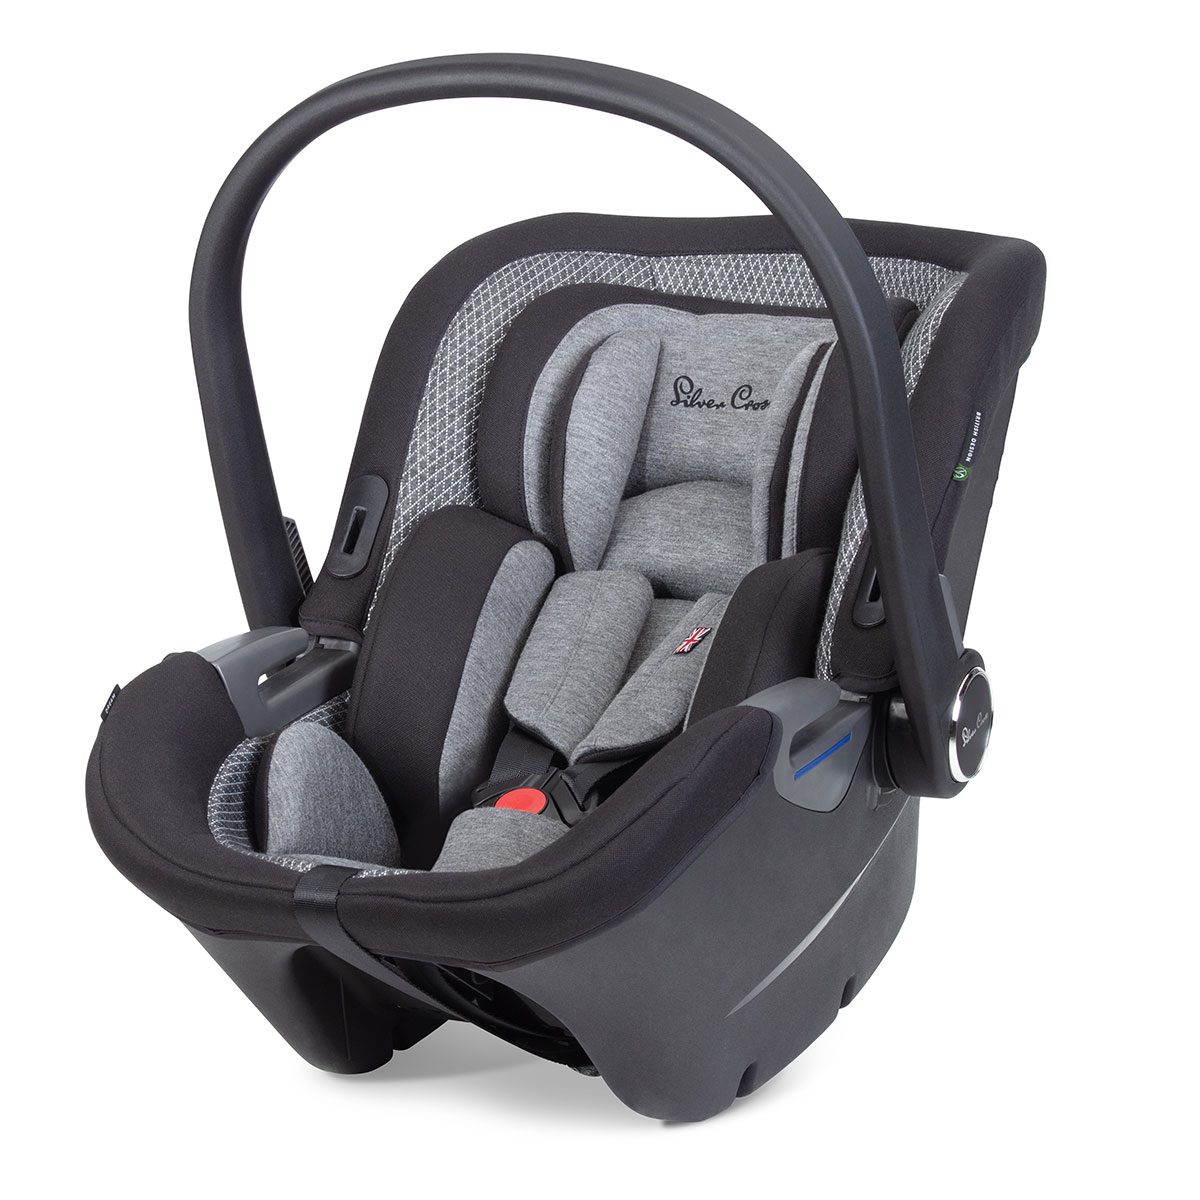 Infant Carrier Seat >> Silver Cross Dream Car Seat Infant Carrier From Birth